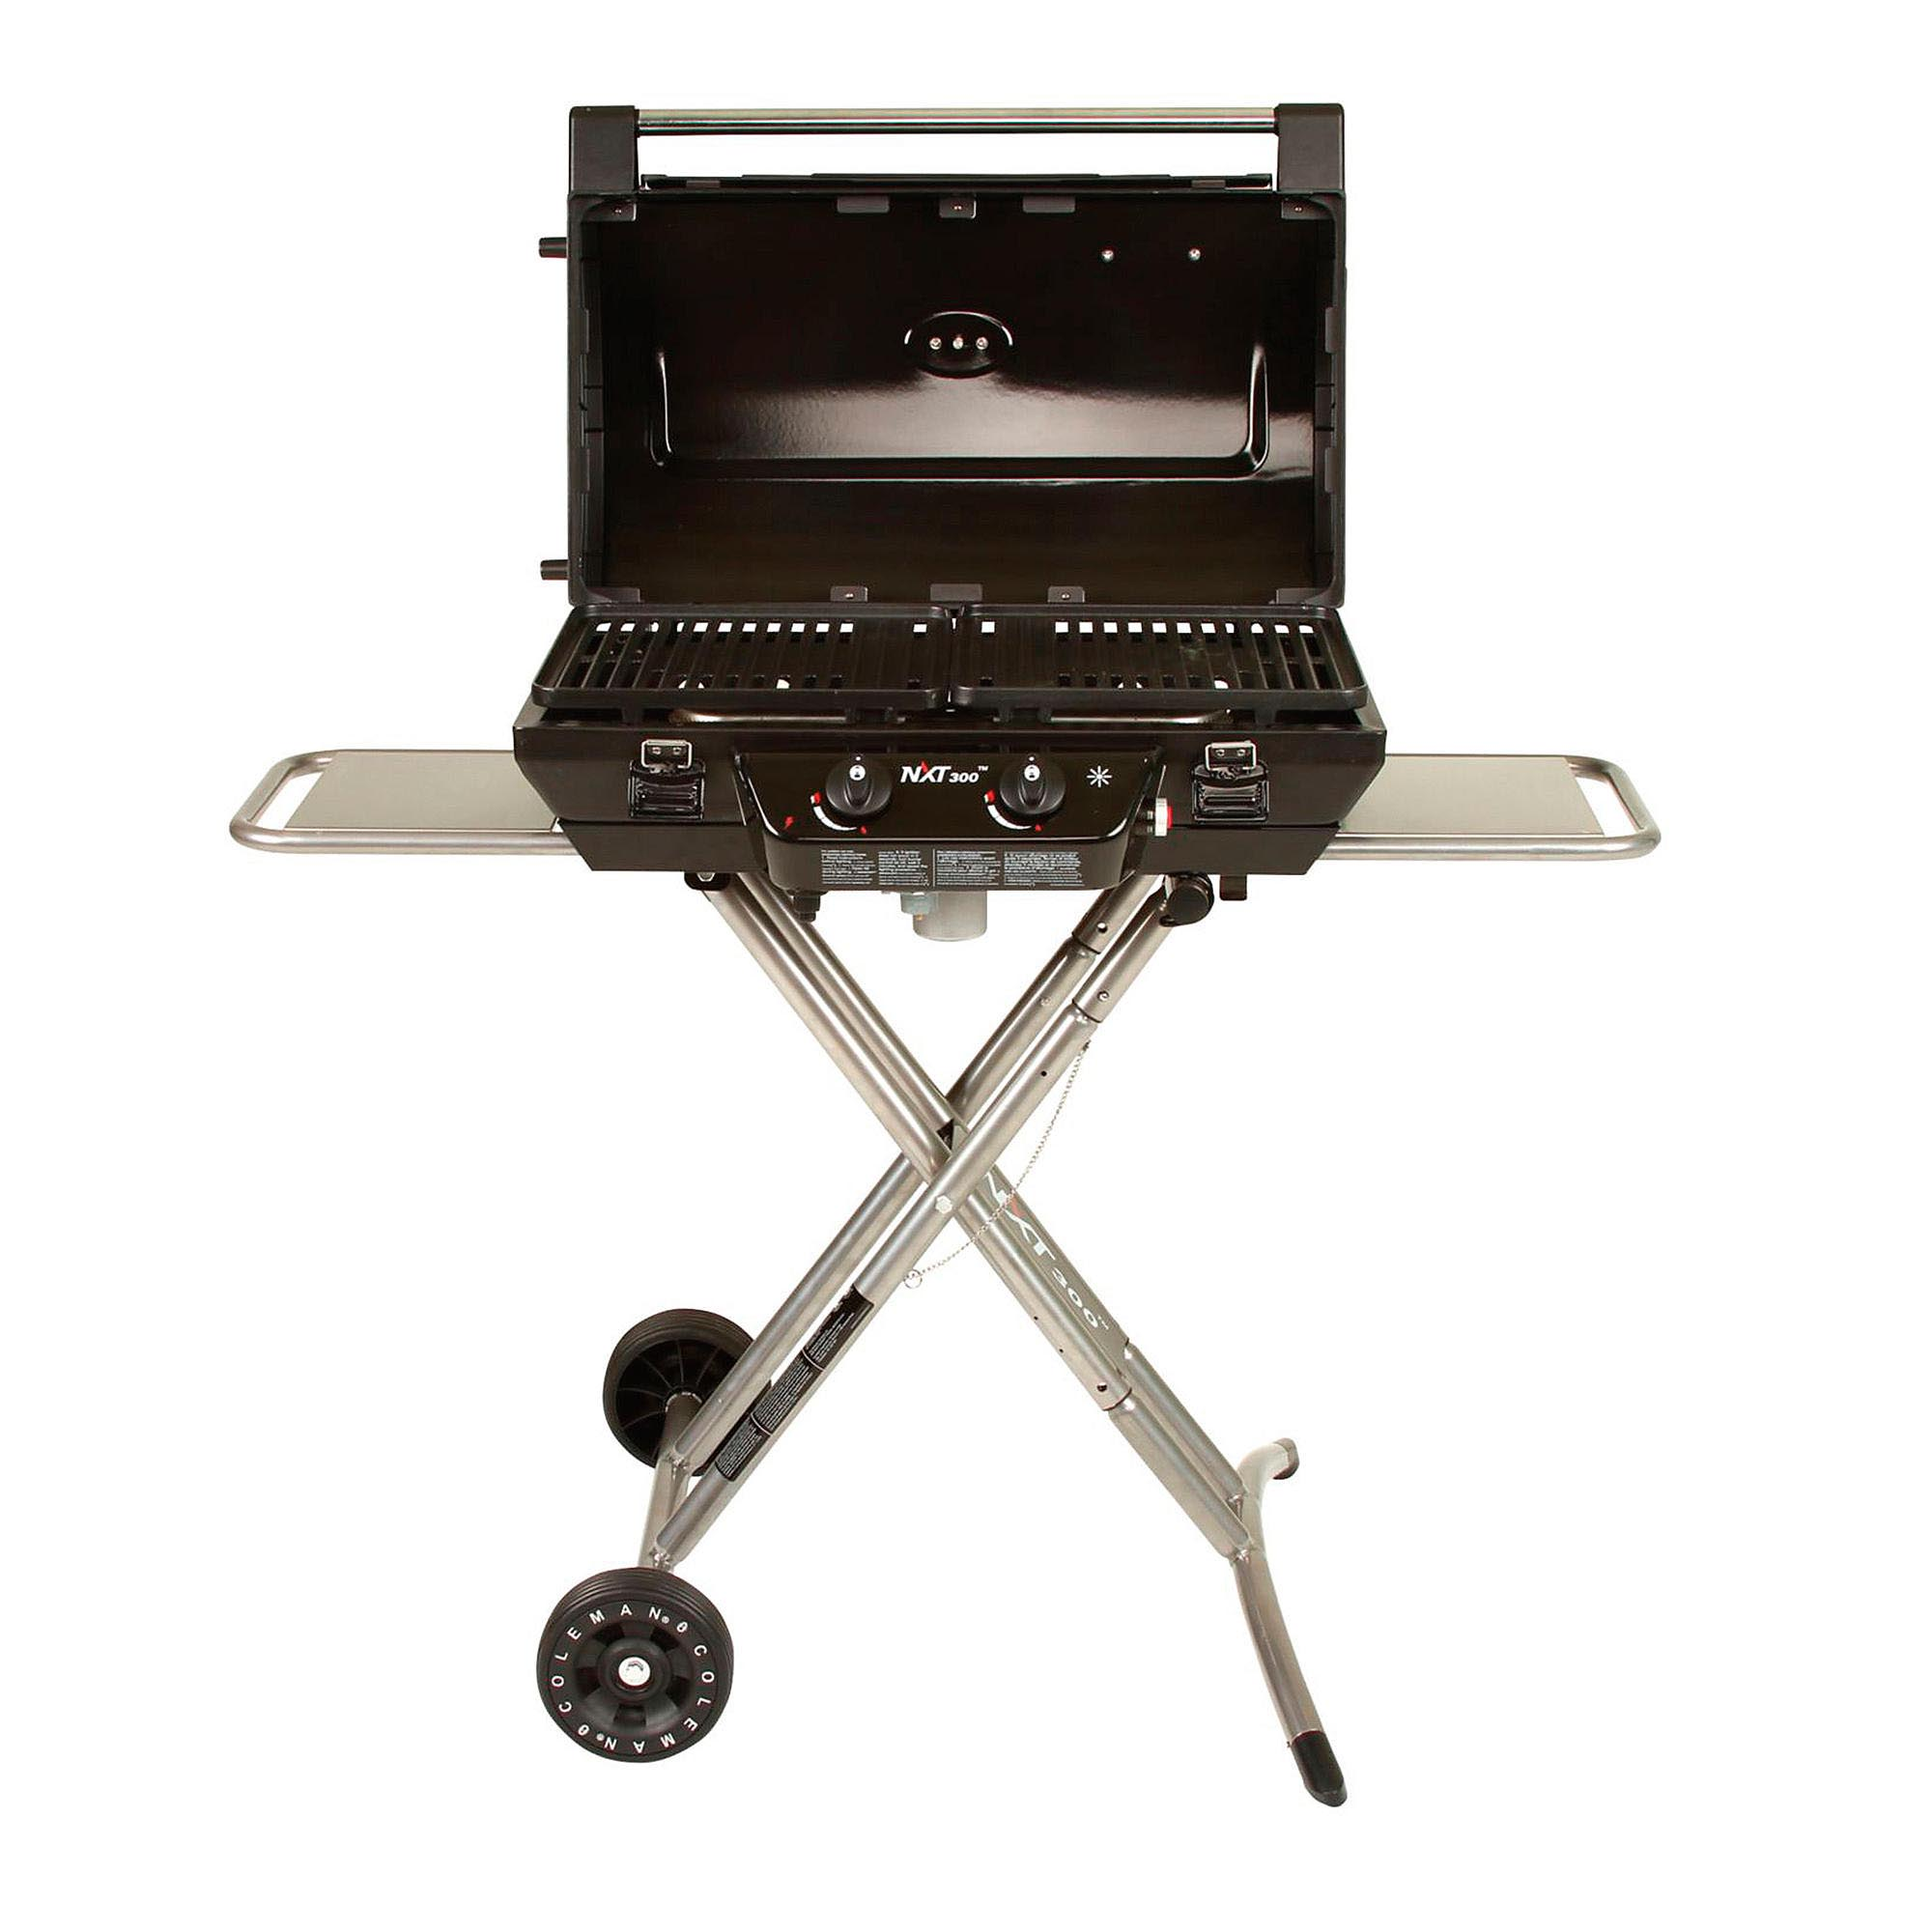 Barbecue Gaz Promotion Coleman Nxt 200 Grill 312 Sq In